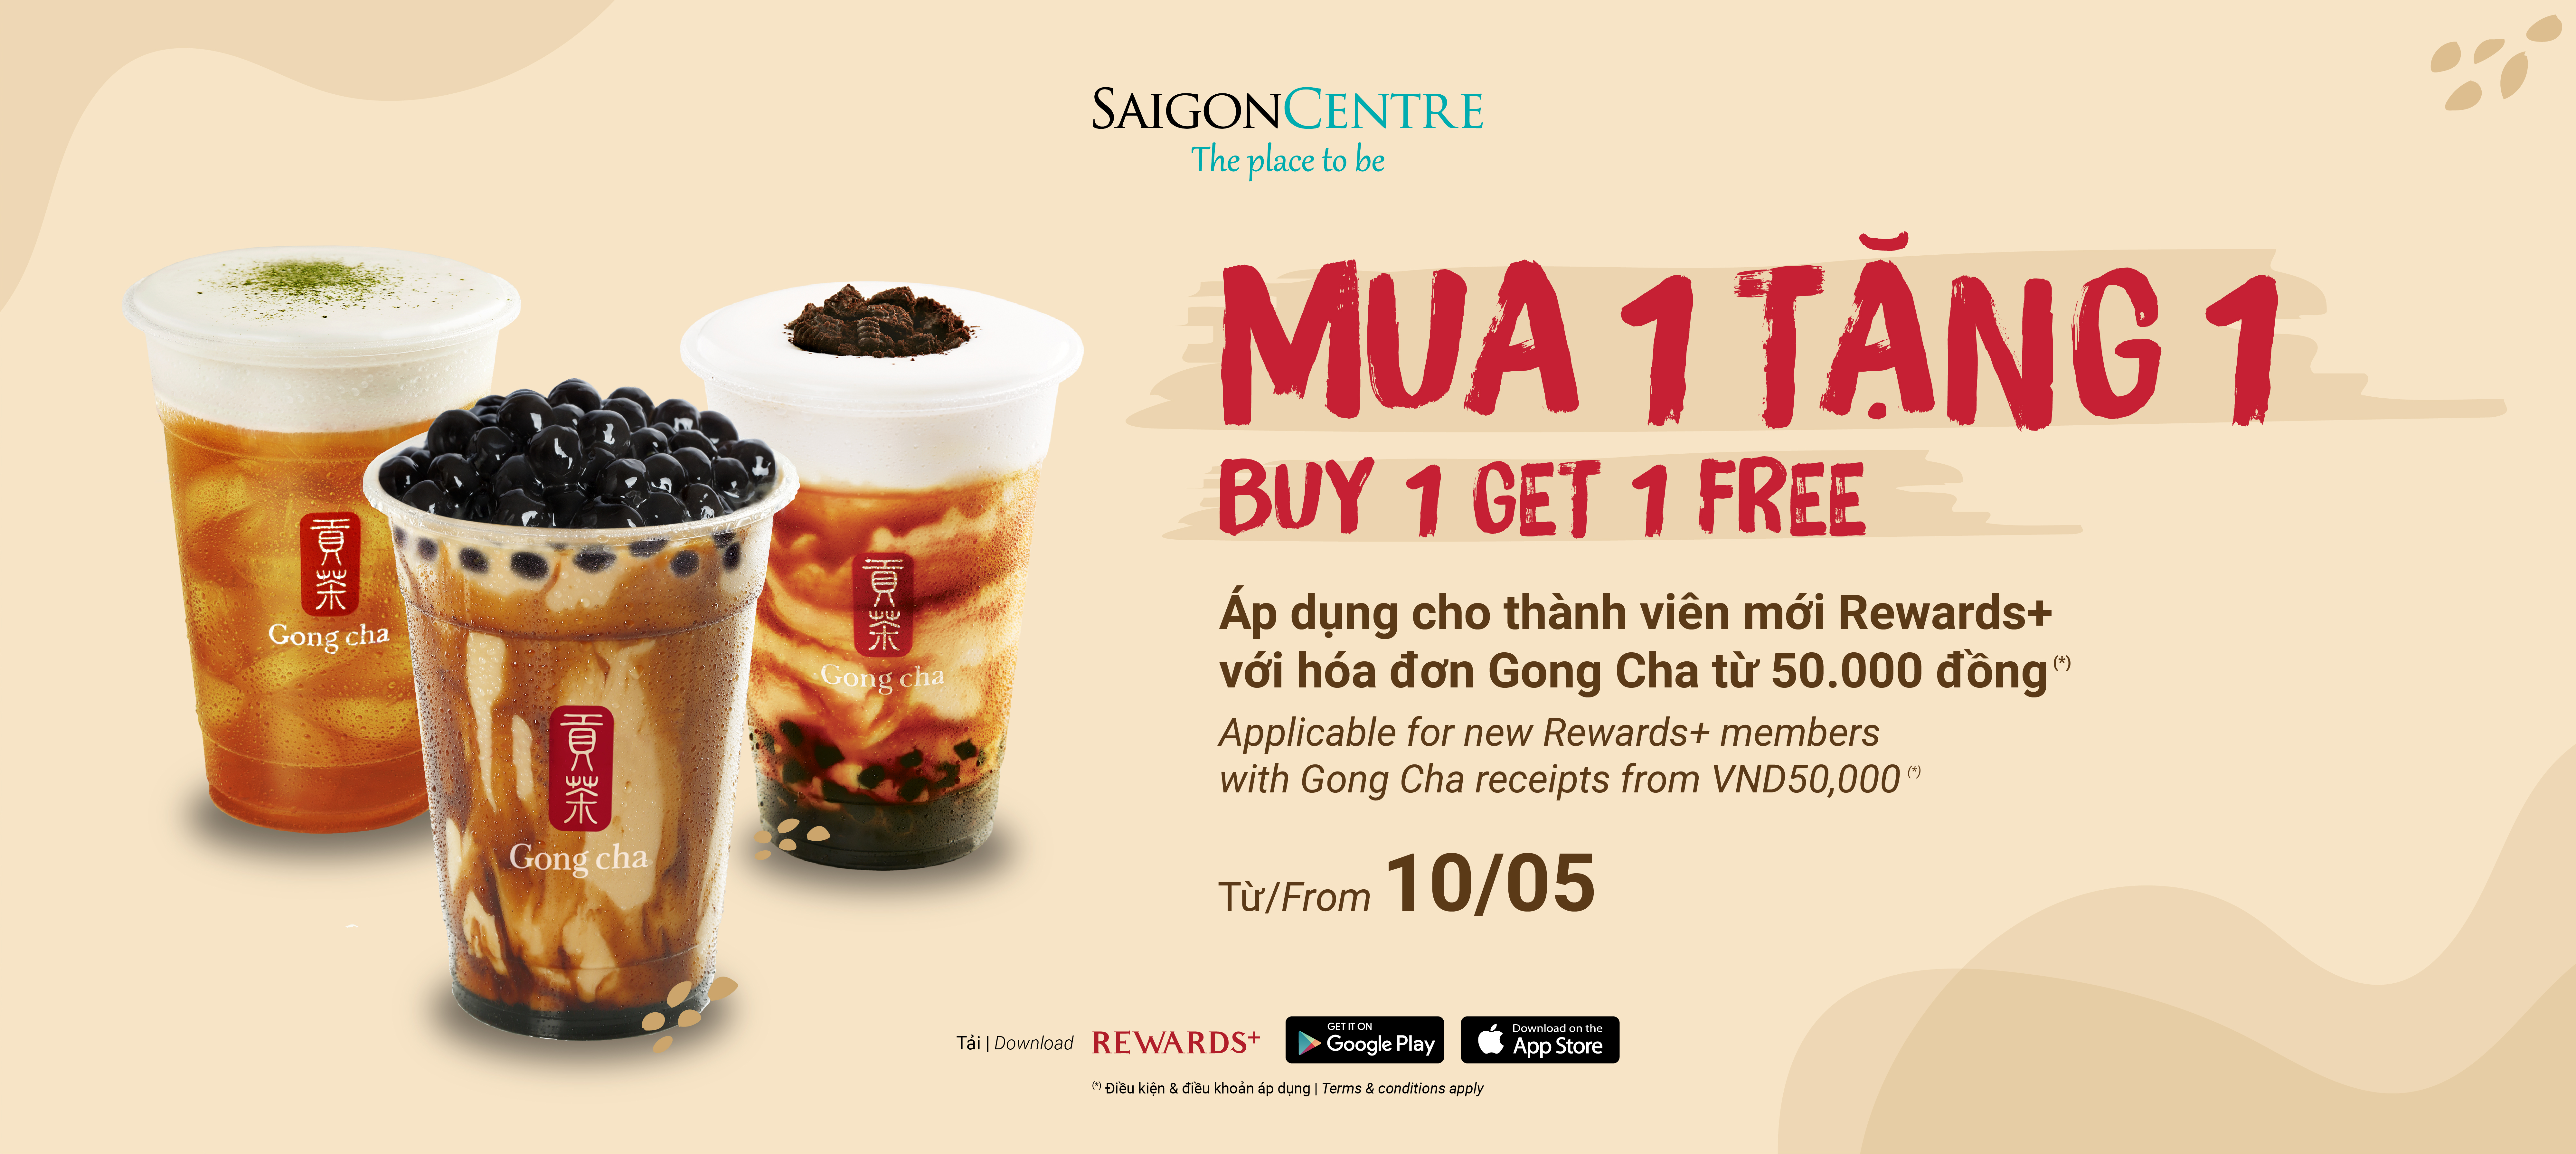 NEW REWARDS+ MEMBERS BUY 1 GET 1 GONG CHA VOUCHER